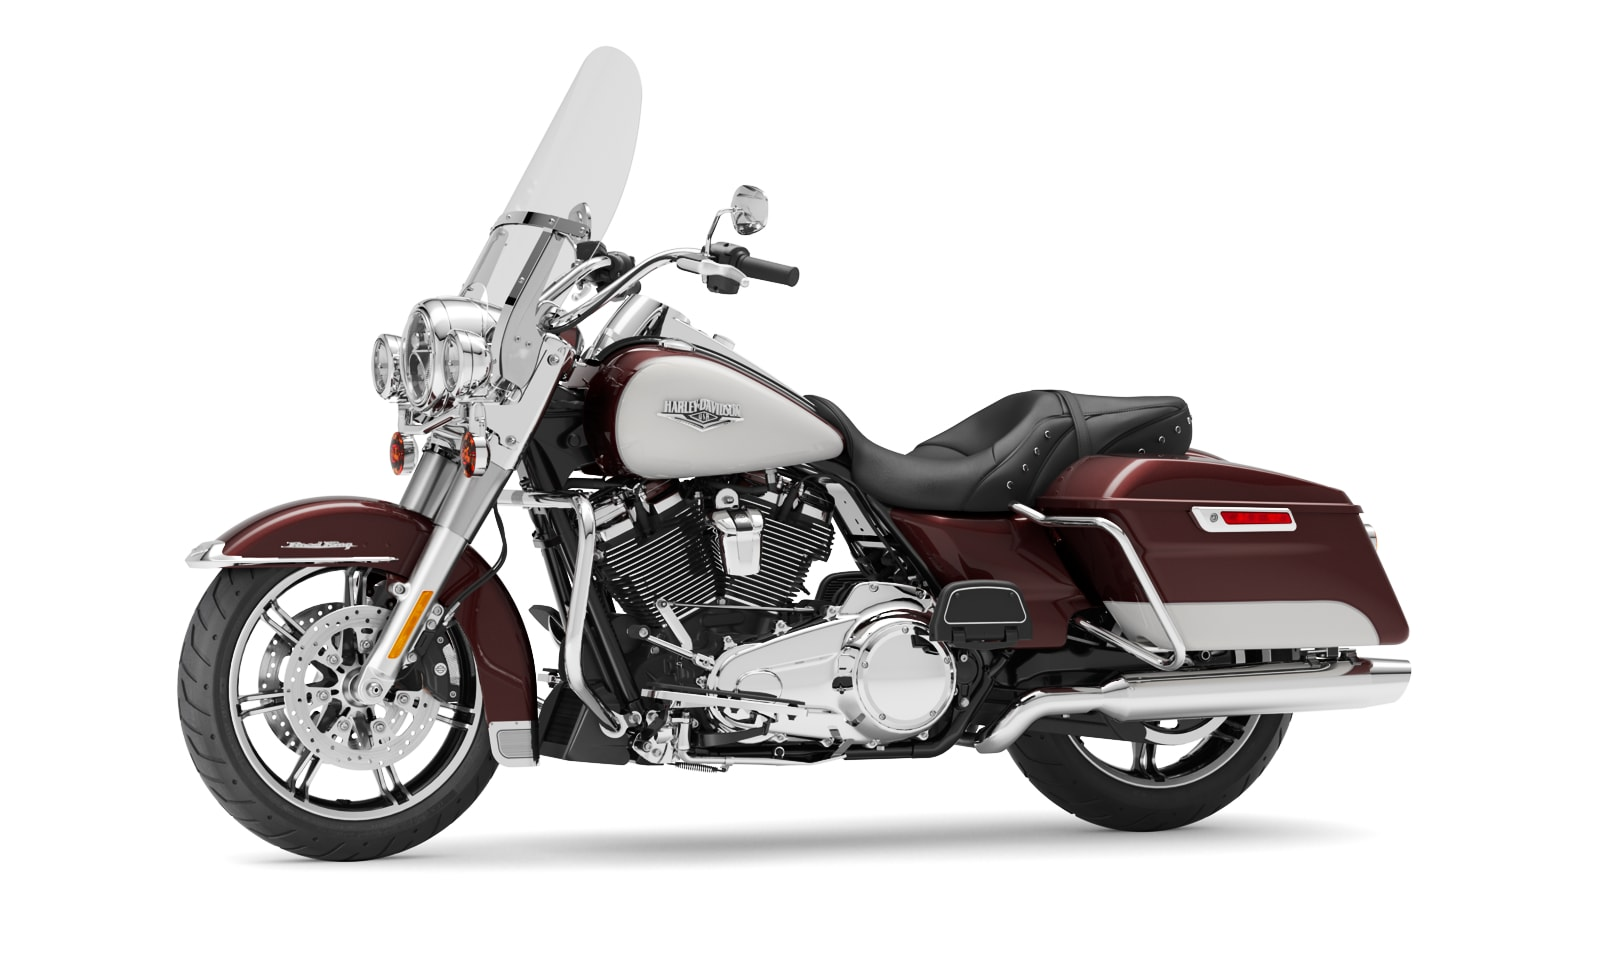 2021 Road King Motorcycle Harley Davidson Usa